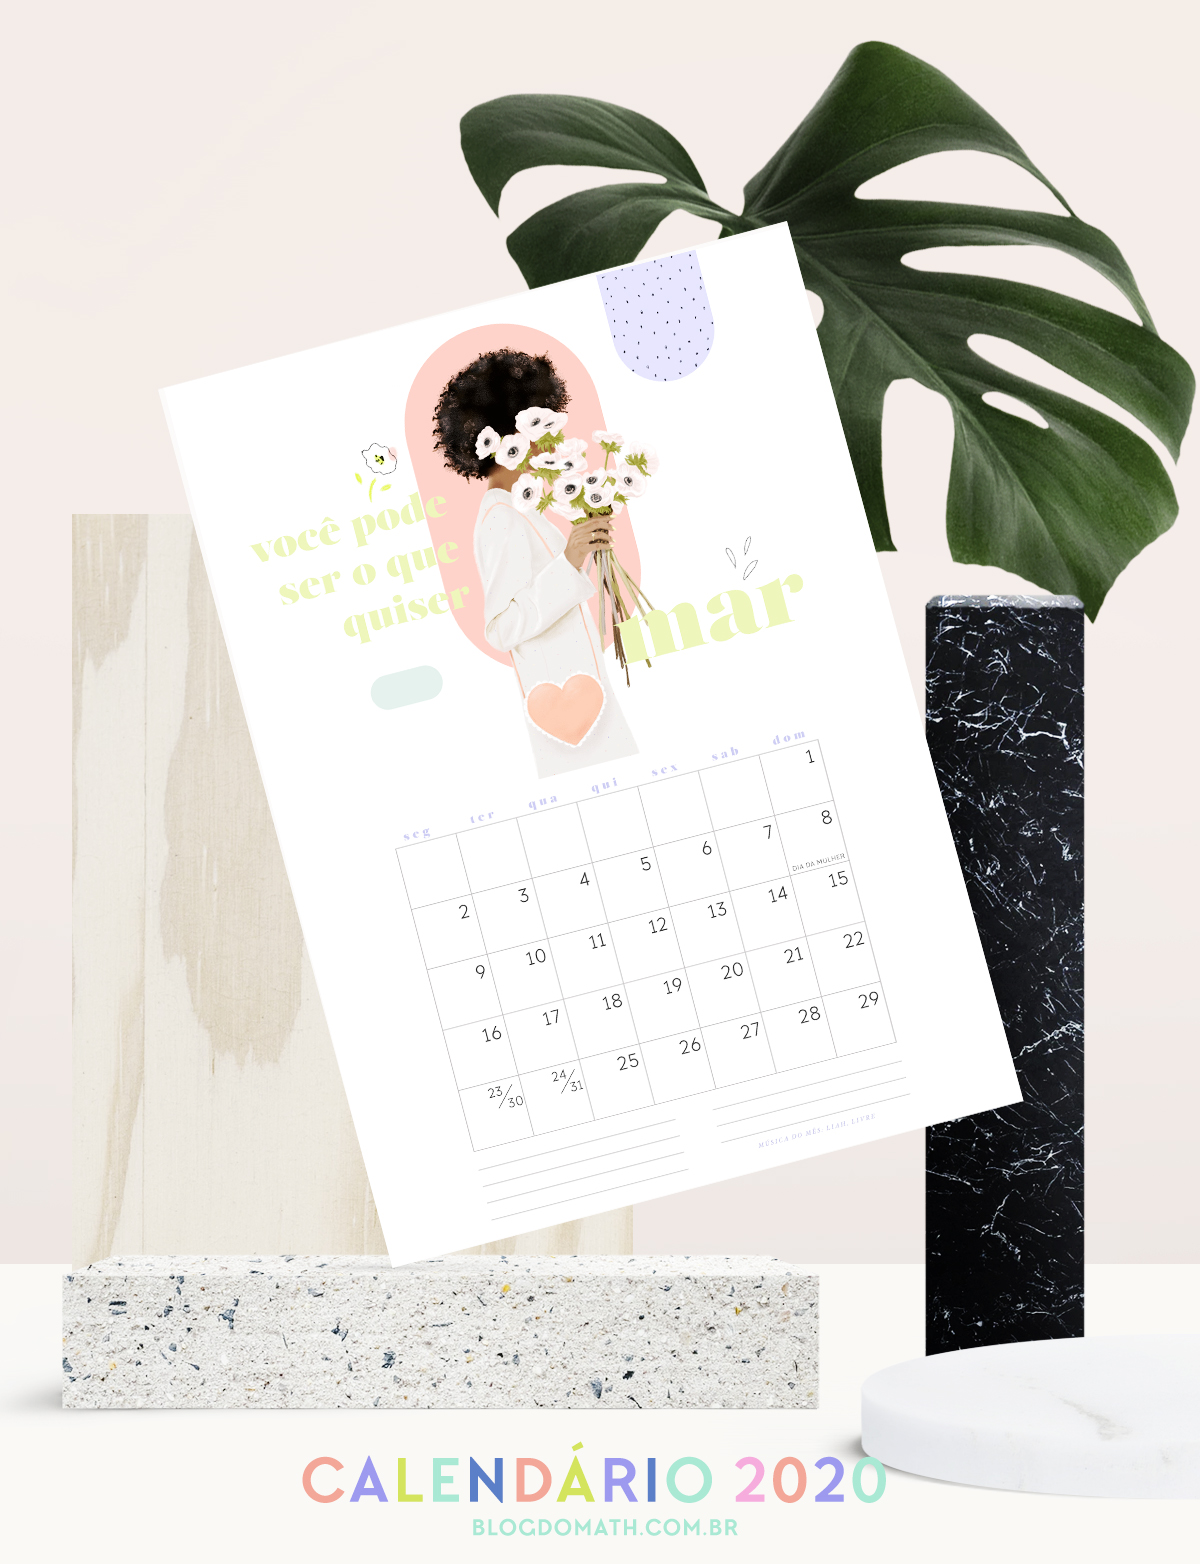 2020 printable colorful illustrated calendar